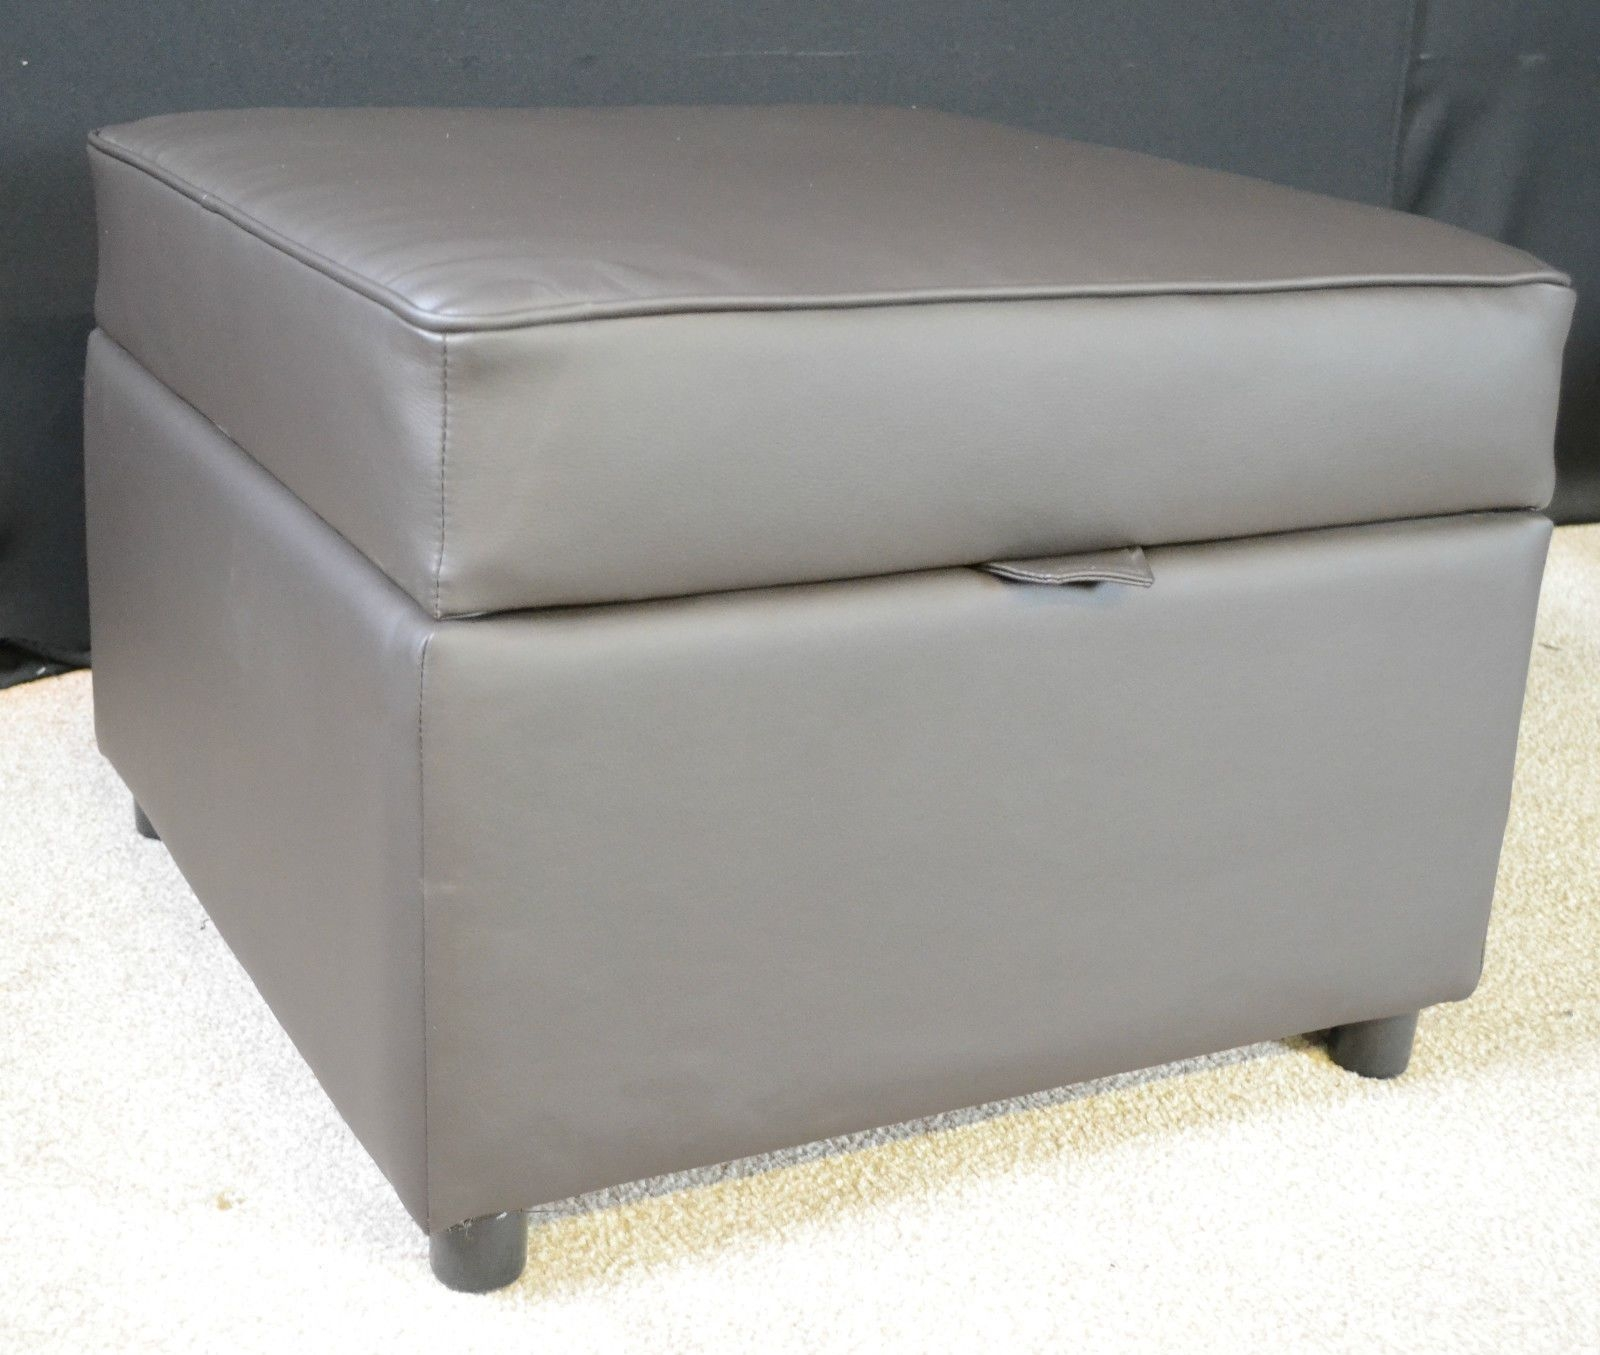 Storage Footstool Pouffe Ottoman Brown Faux Leather Pertaining To Footstools And Pouffes With Storage (Image 11 of 15)